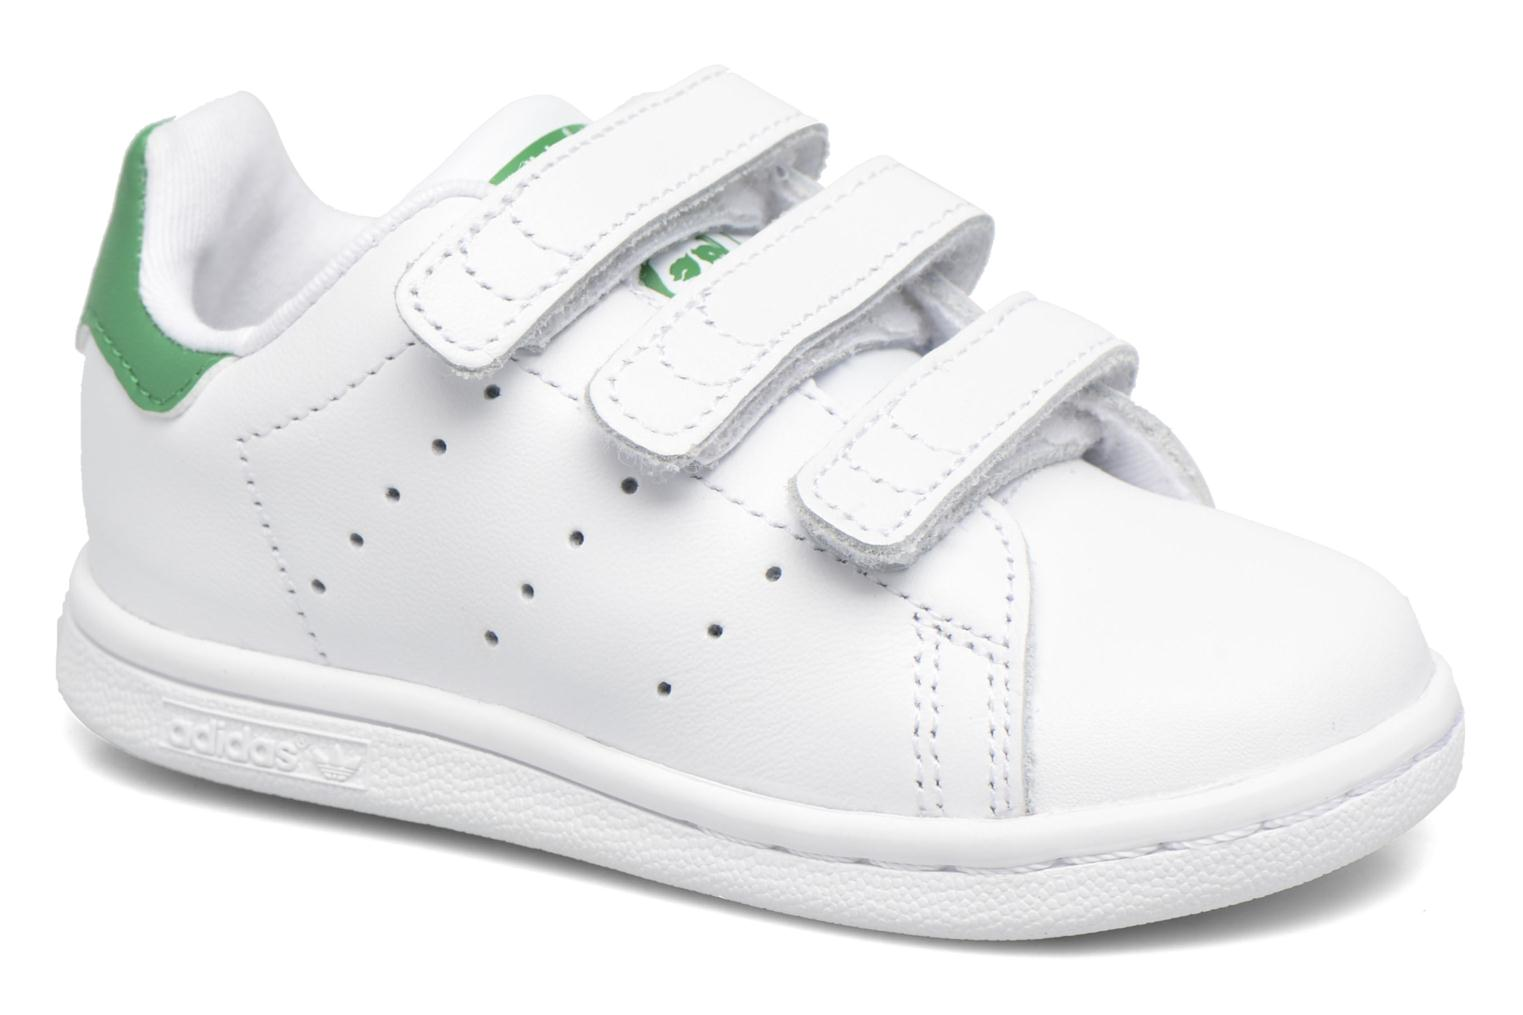 Noiess/Noiess/Ftwbla Adidas Originals Stan smith cf I (Noir)